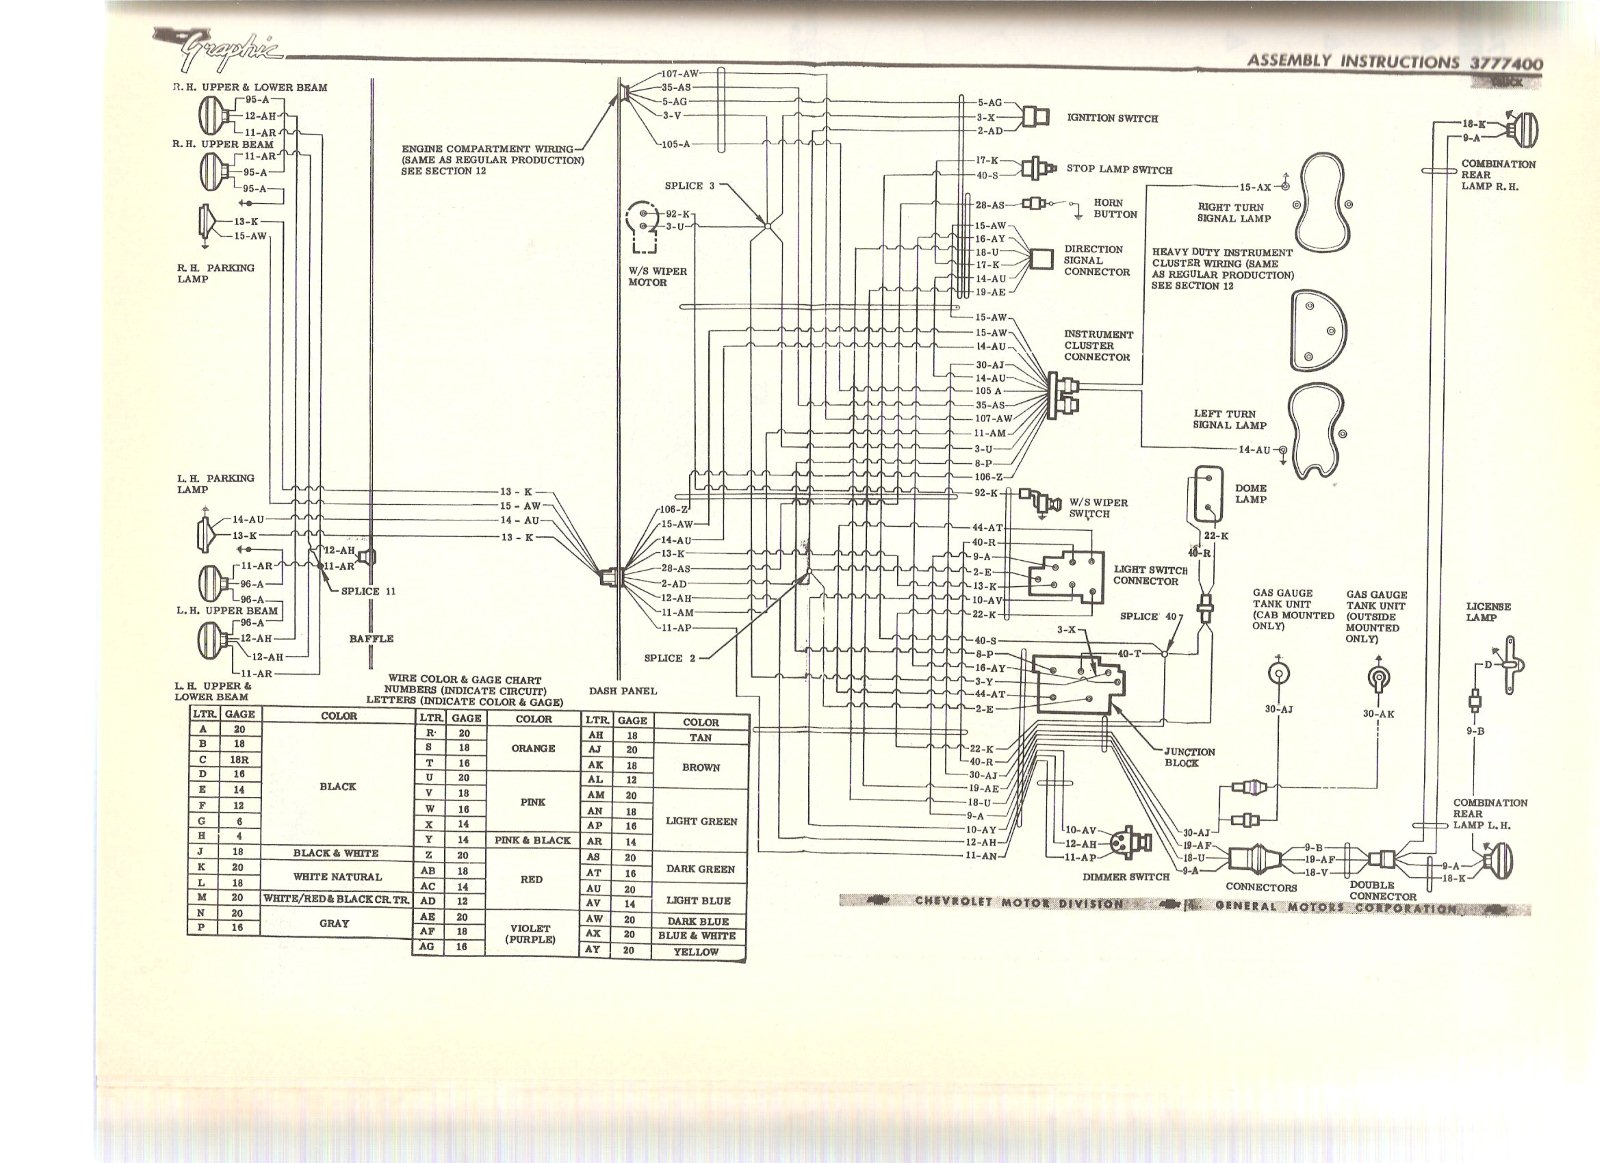 1967 Chevy Ii Wiring Diagram Another Blog About 1973 Pick Up 350 Starter 1985 K20 Truck Headlight Fuse Box